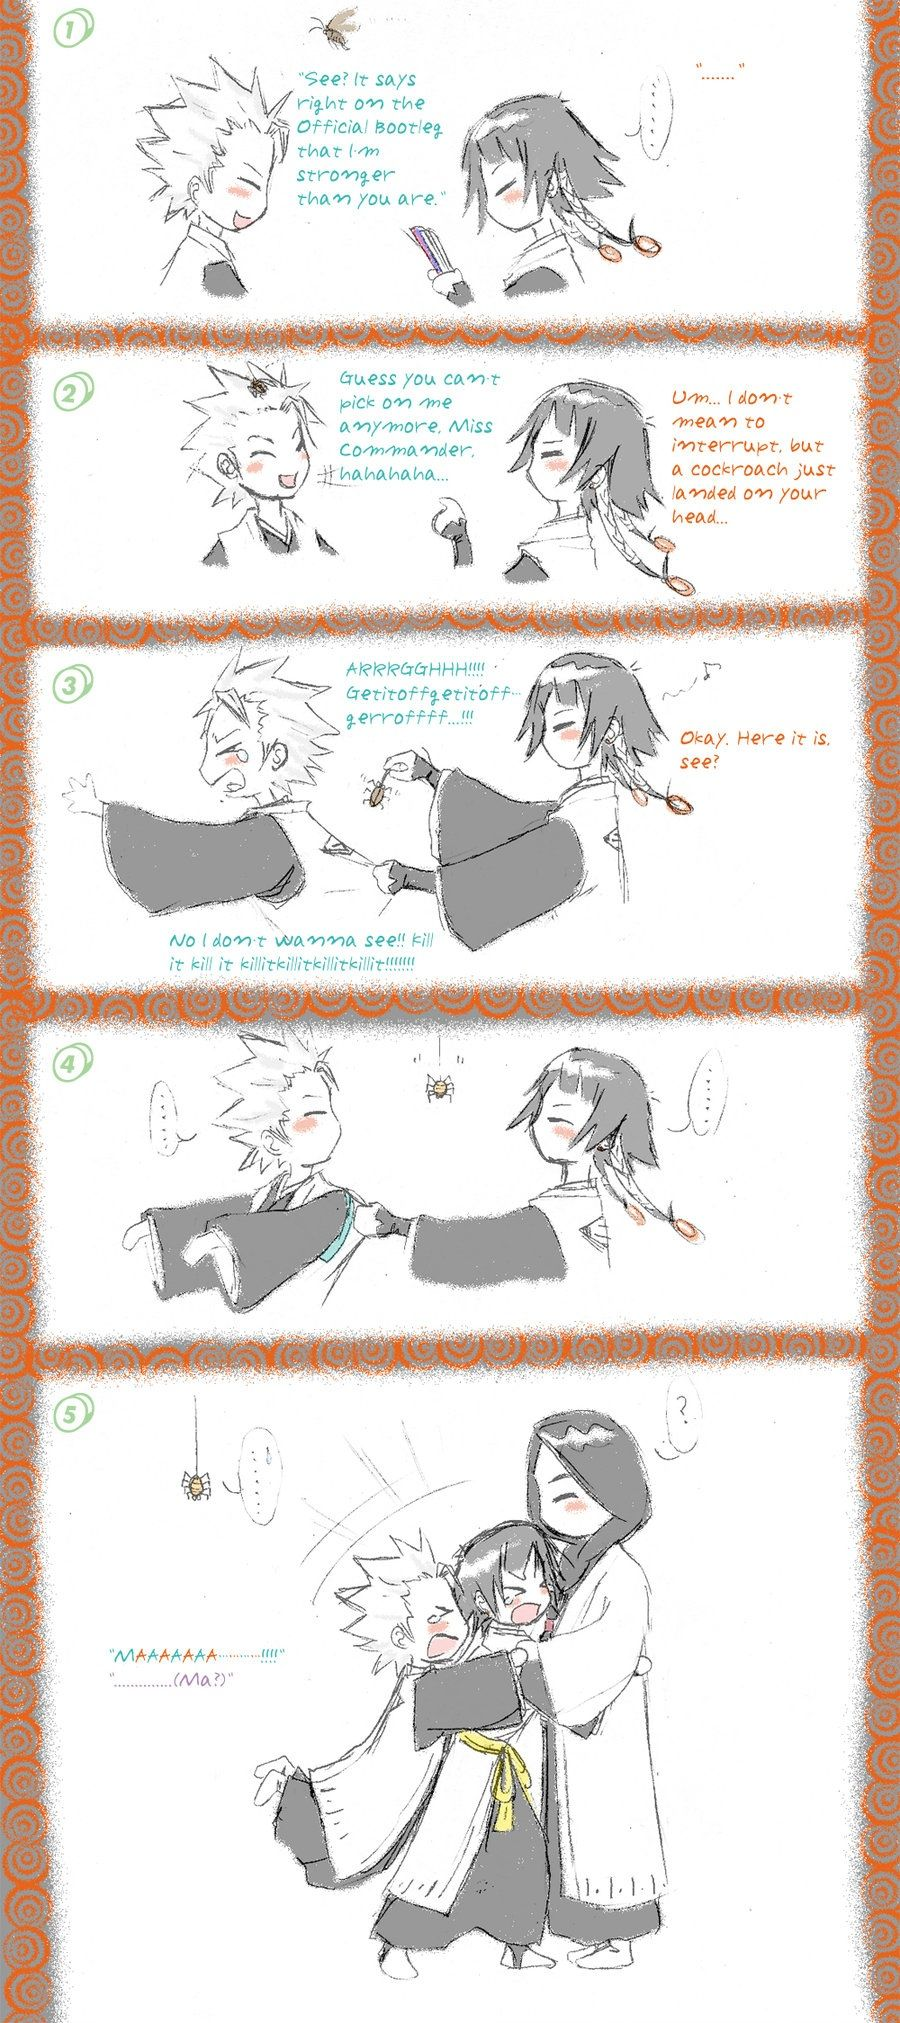 Cute comic featuring Toushirou Hitsugaya, Soi Fon, and Captain Unohana.